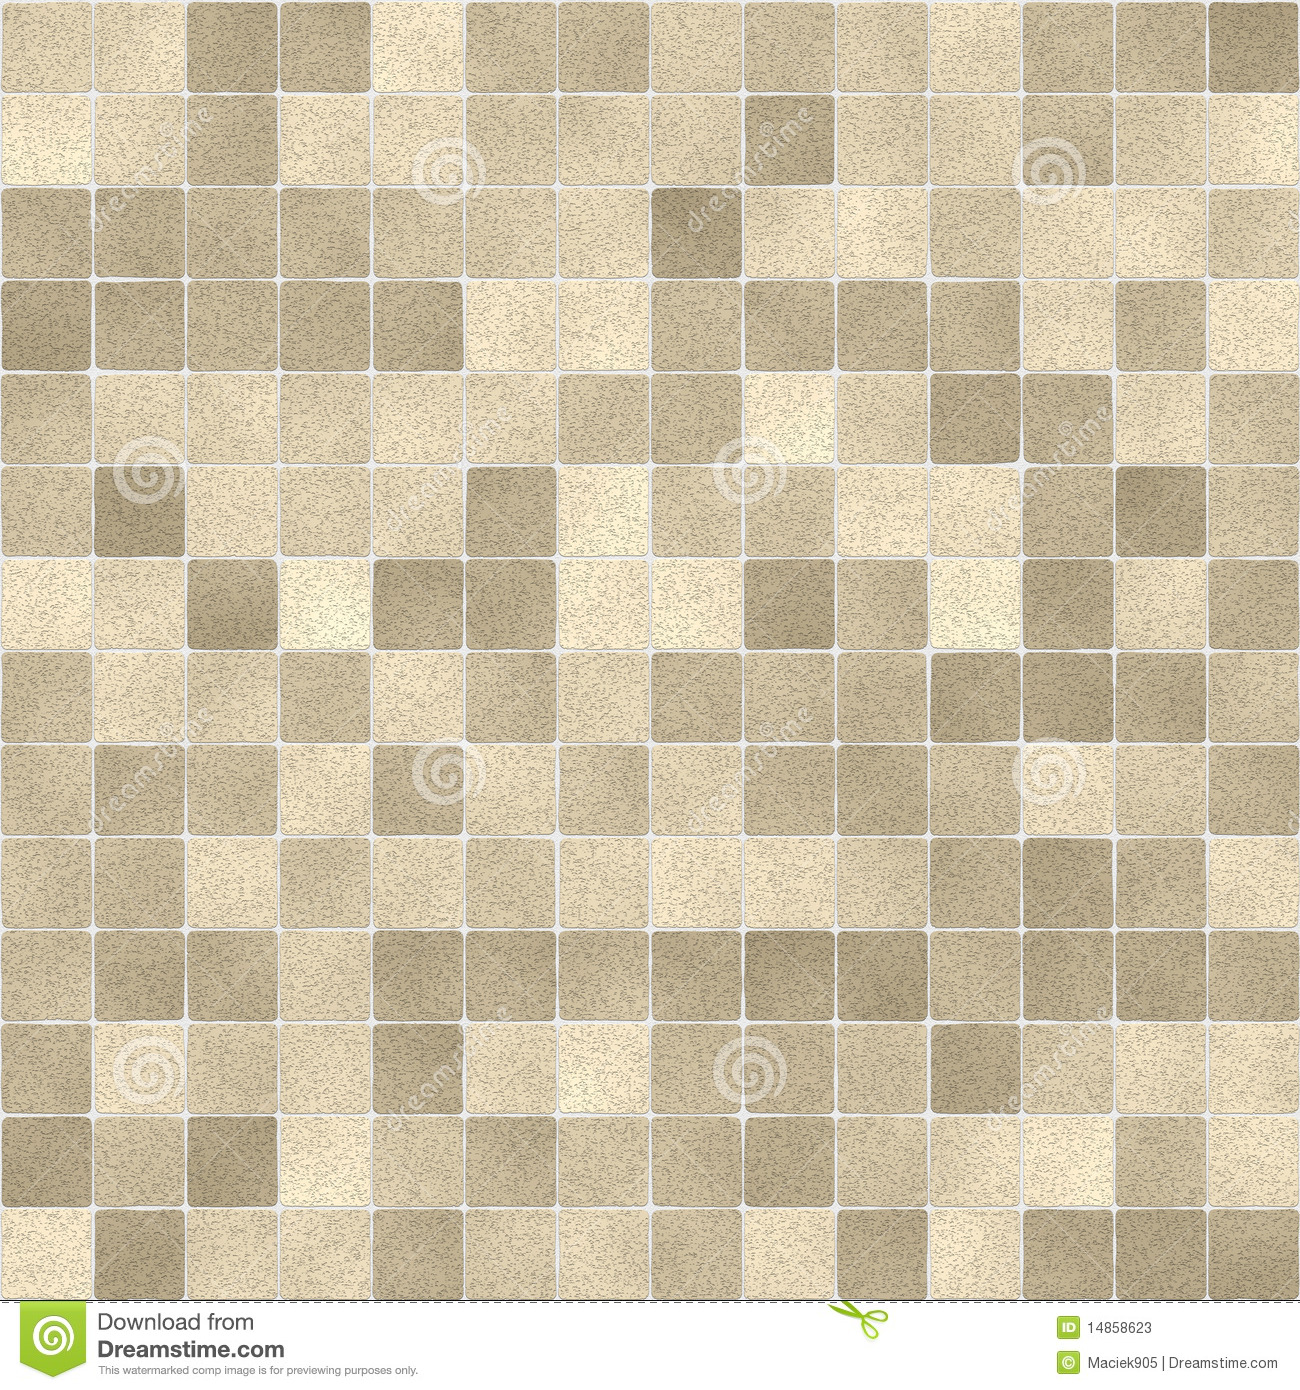 Seamless tile clipart png freeuse download Tiles clipart texture seamless Pencil and in color tiles ... png freeuse download